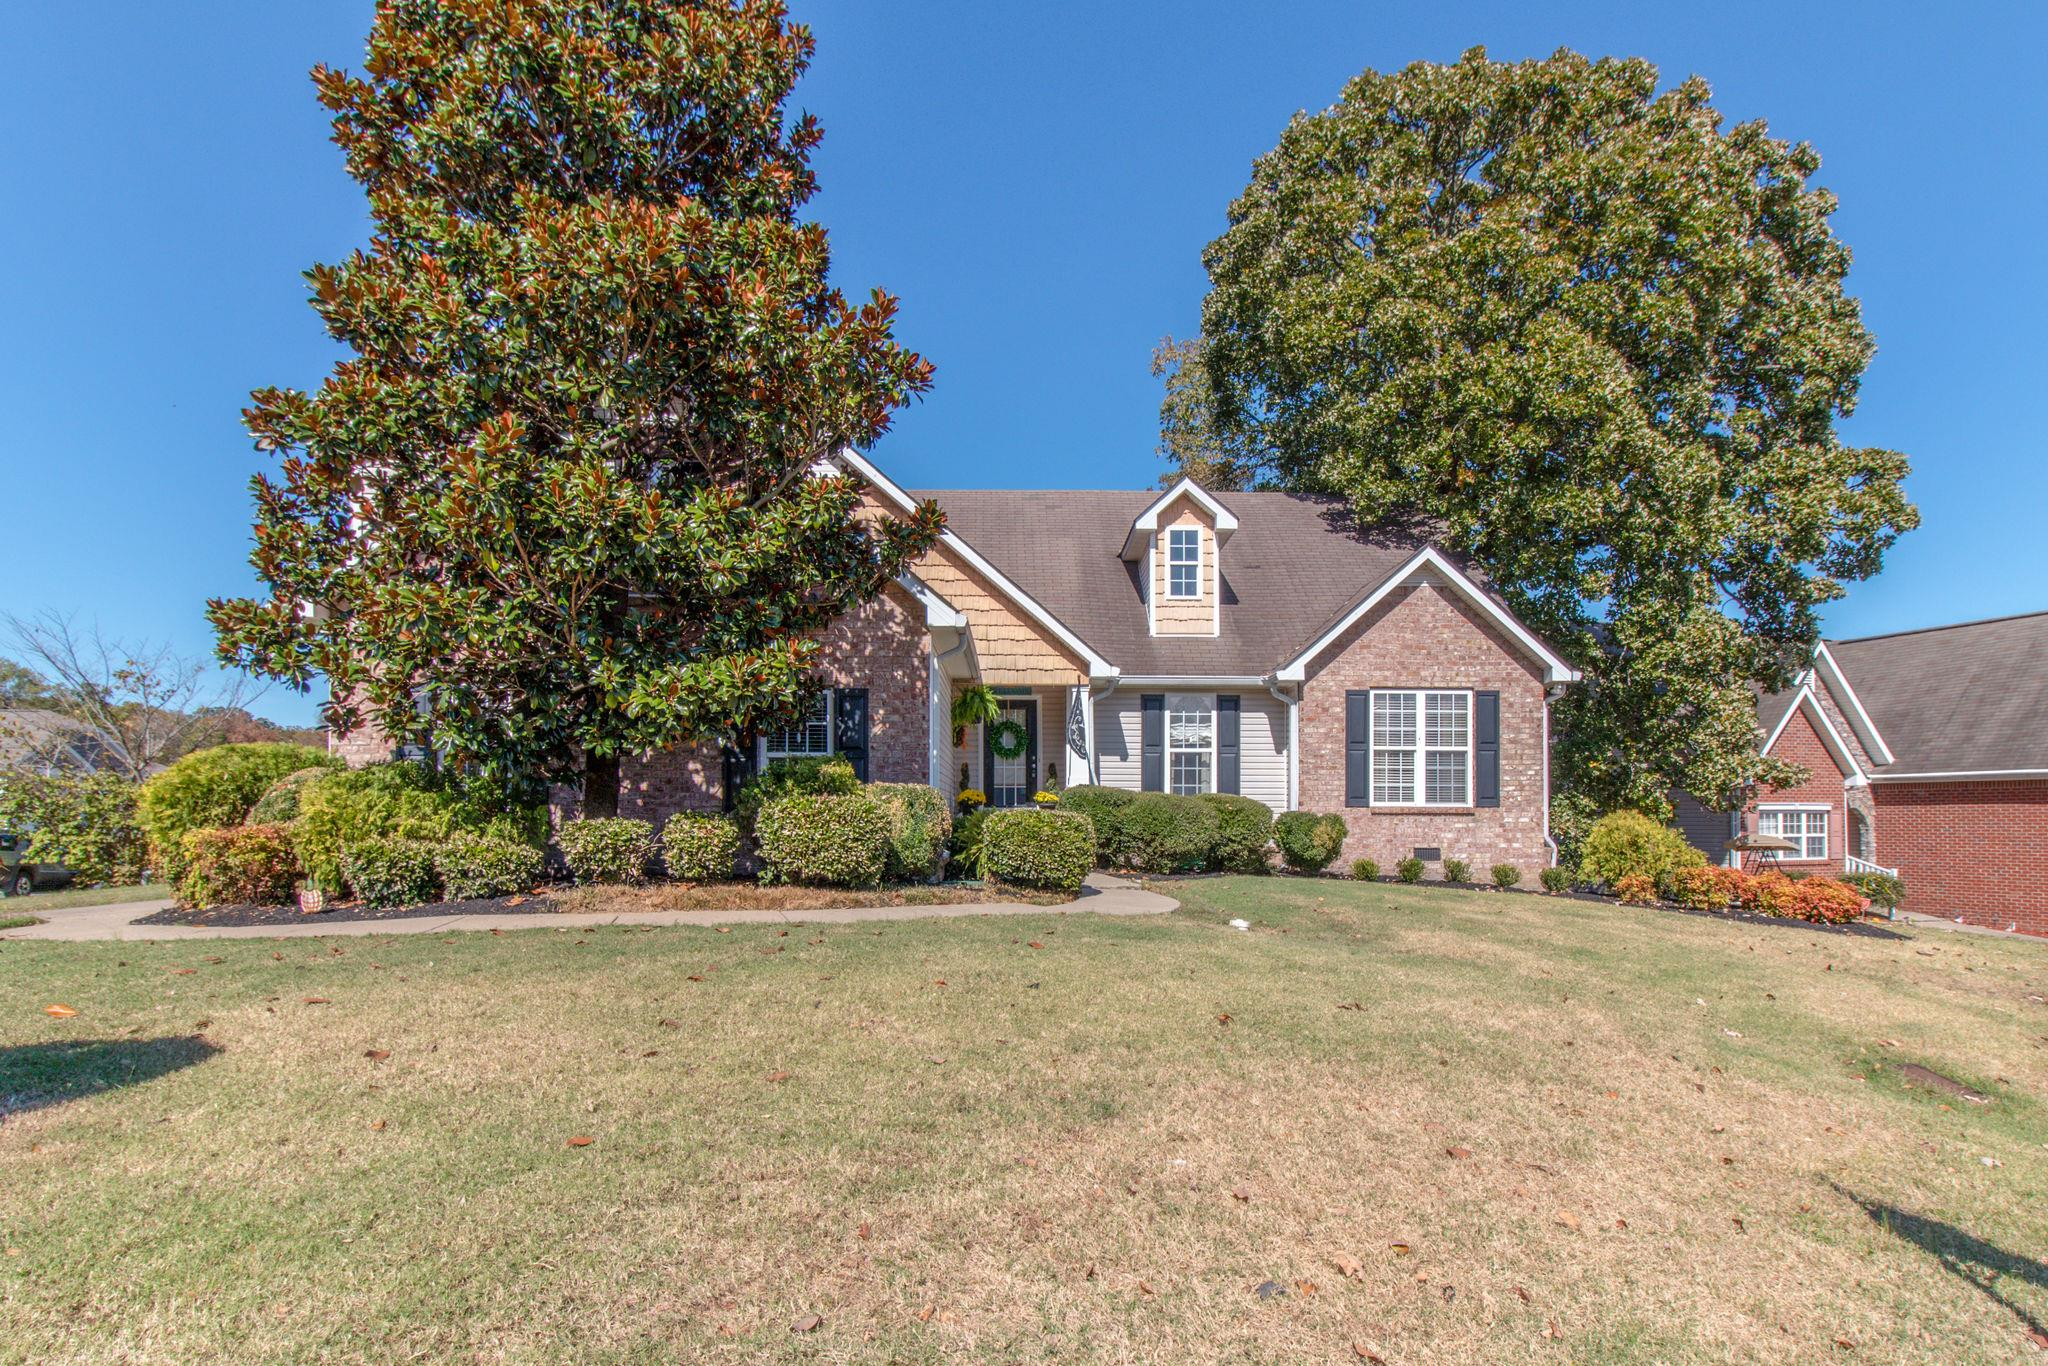 4037 Pineorchard Pl, Nashville-Antioch in Davidson County County, TN 37013 Home for Sale